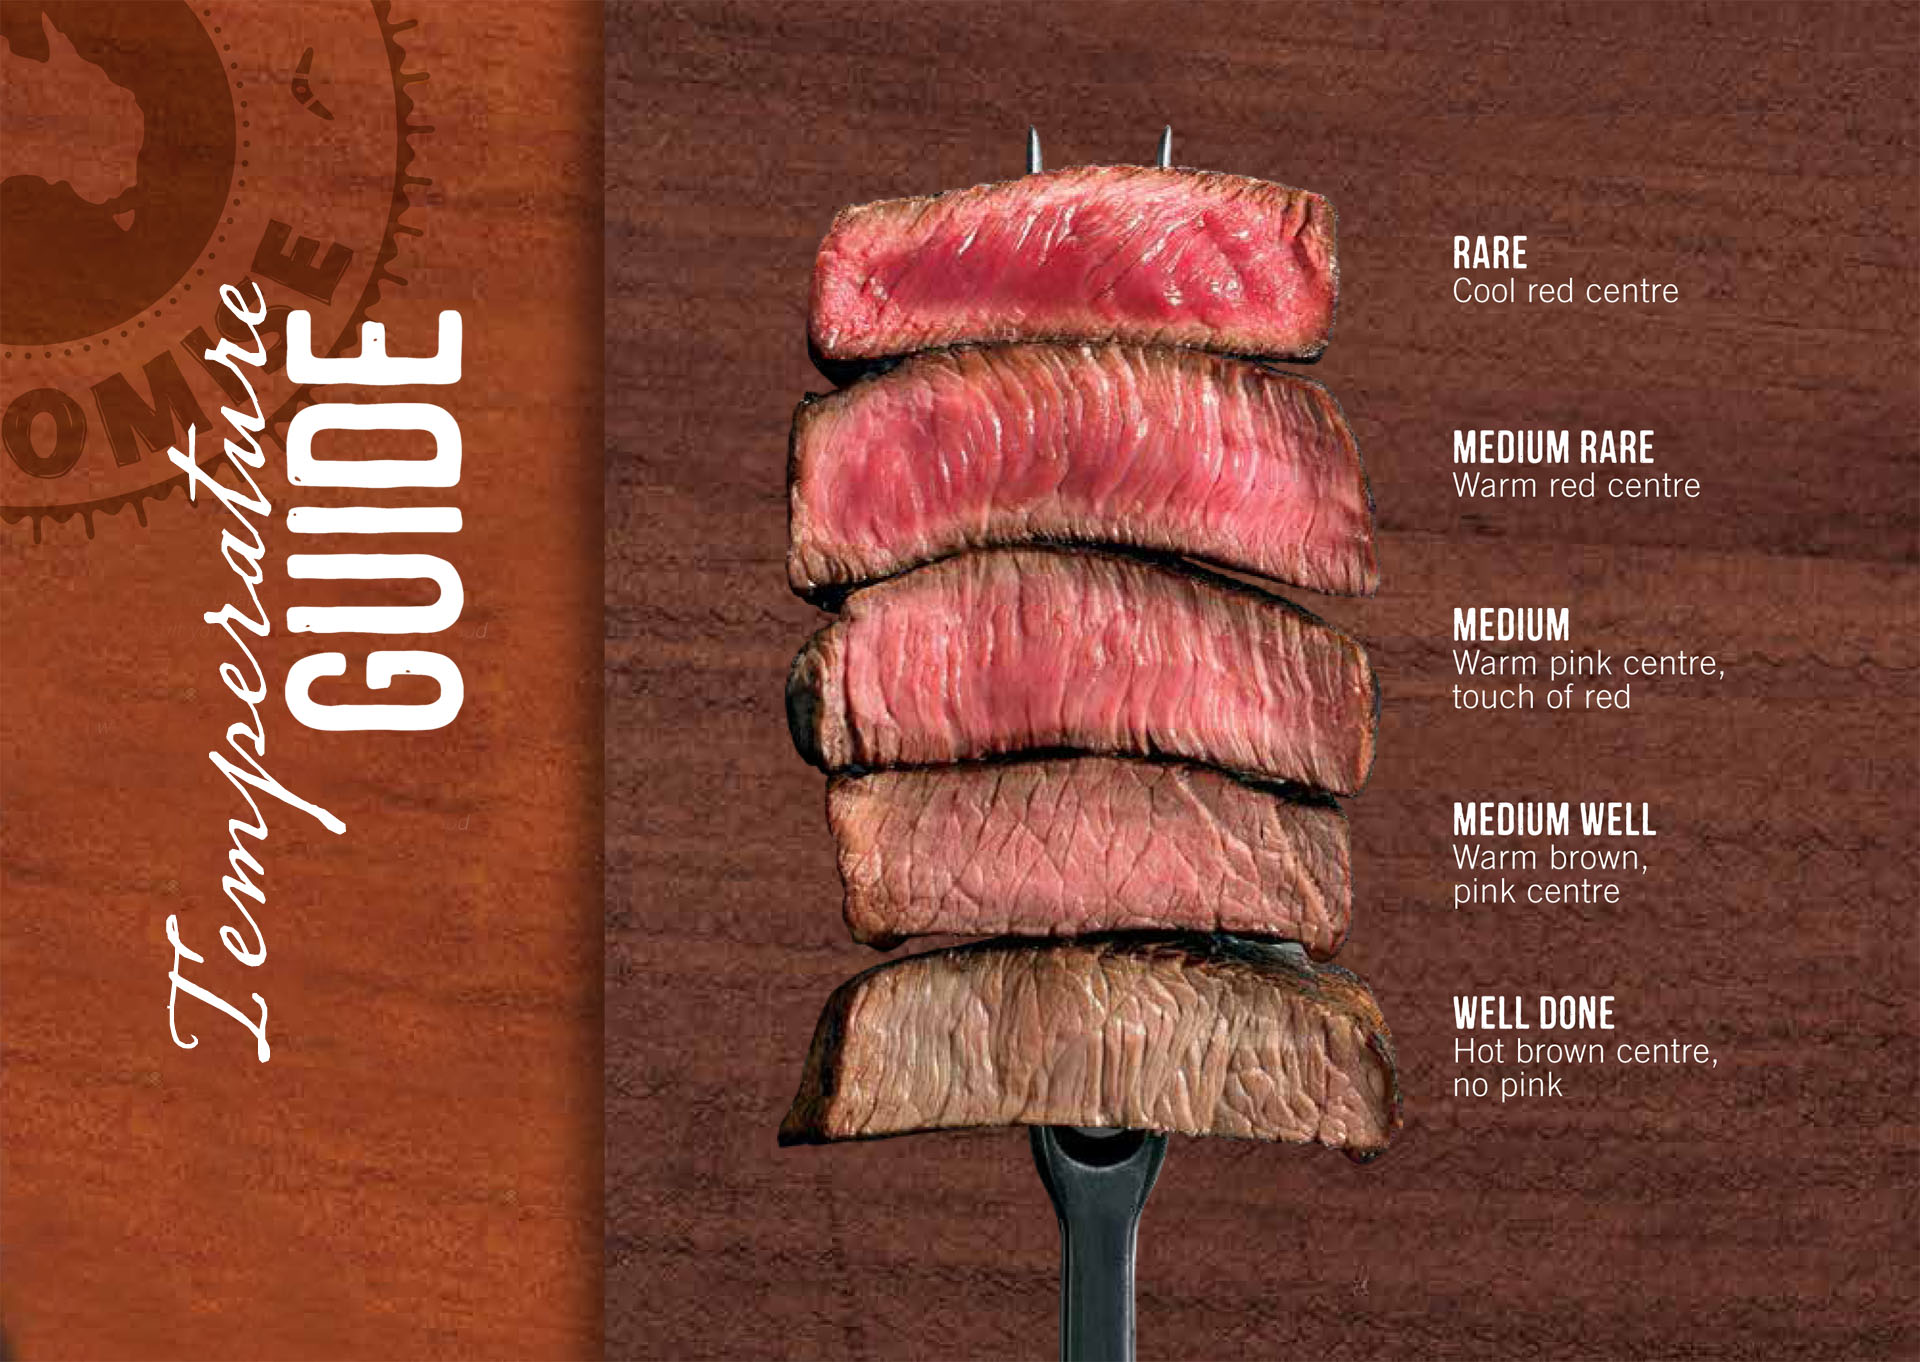 Meat Guide